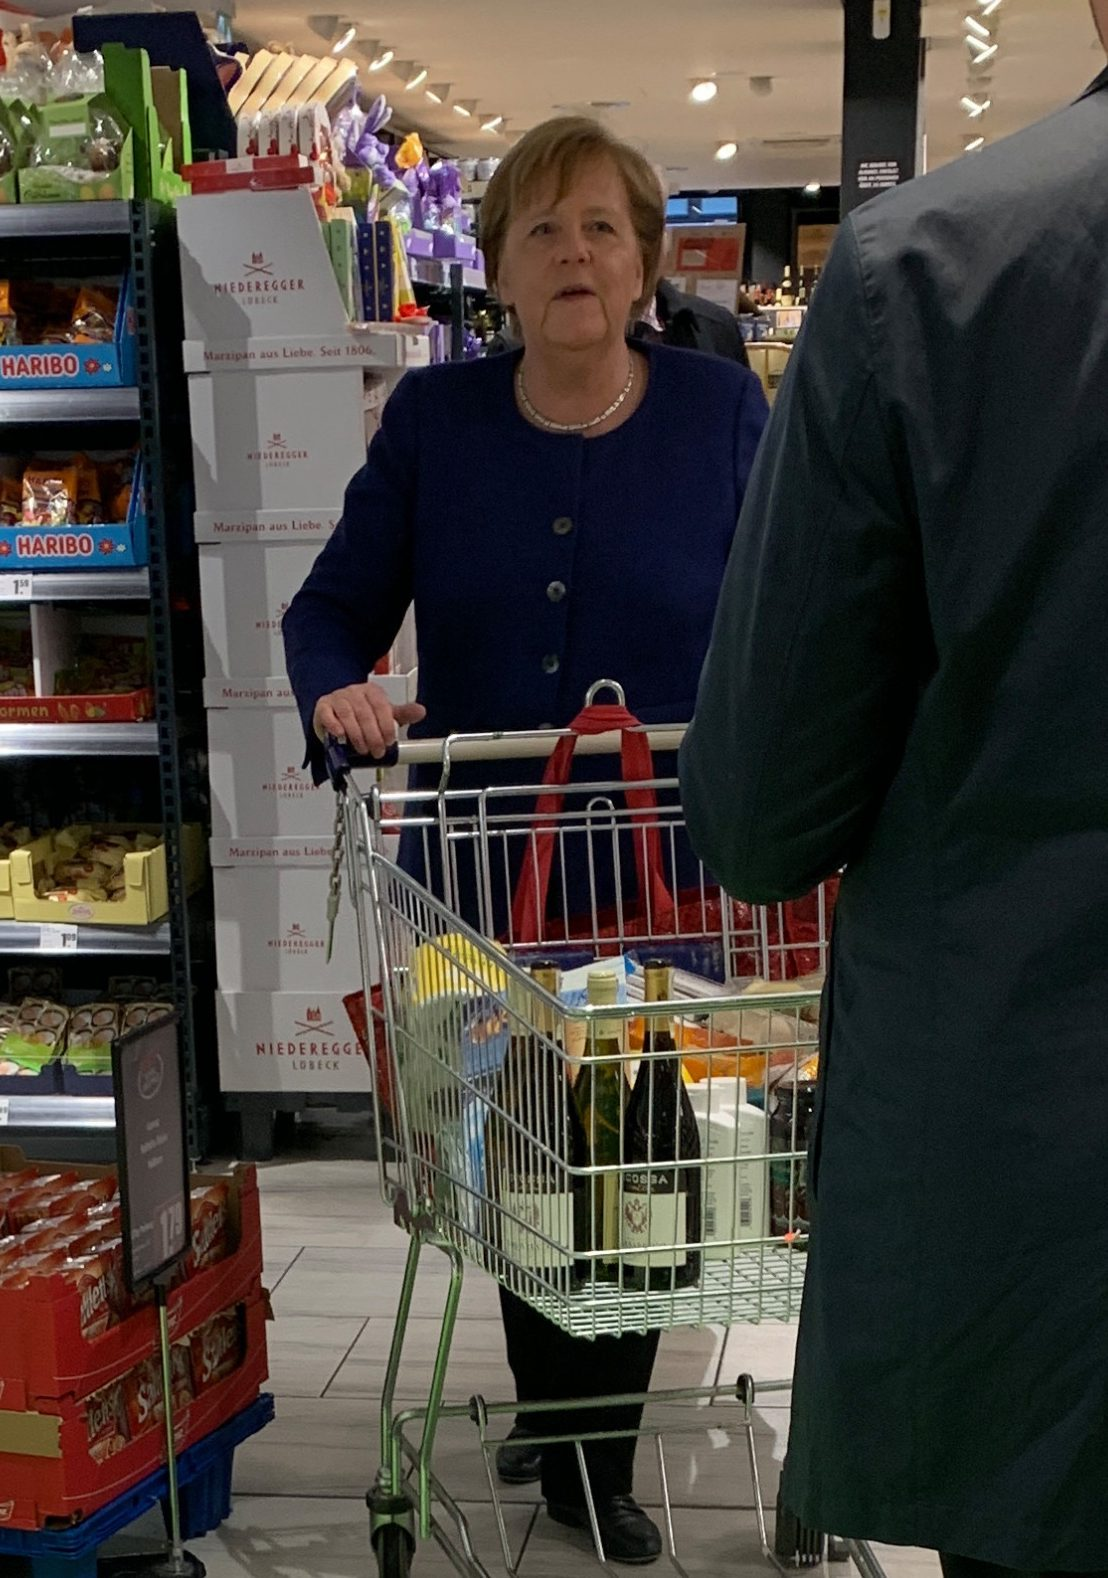 German Chancellor Angela Merkel was spotting shopping for loo roll and wine over the weekend